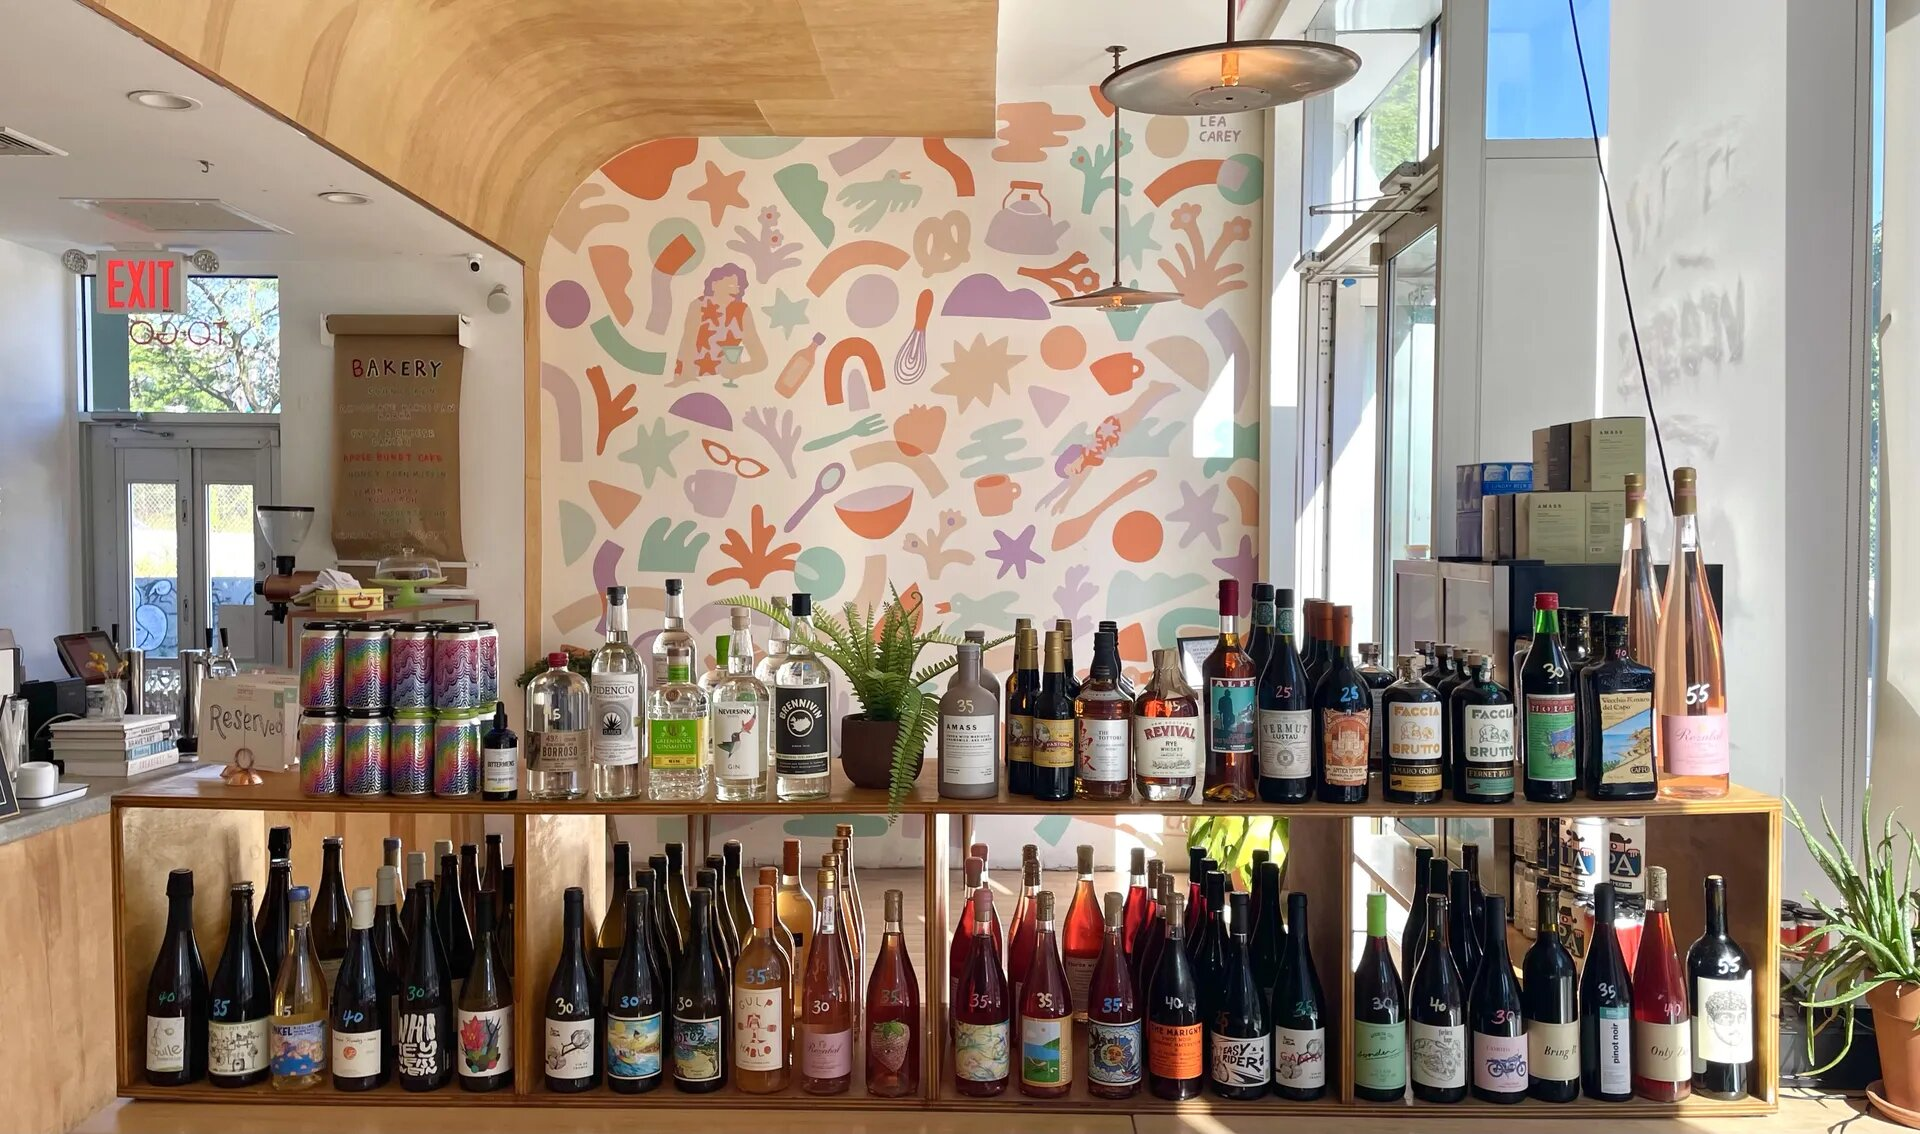 A shelf in a cafe displays many bottles of wine against a bright background wall.